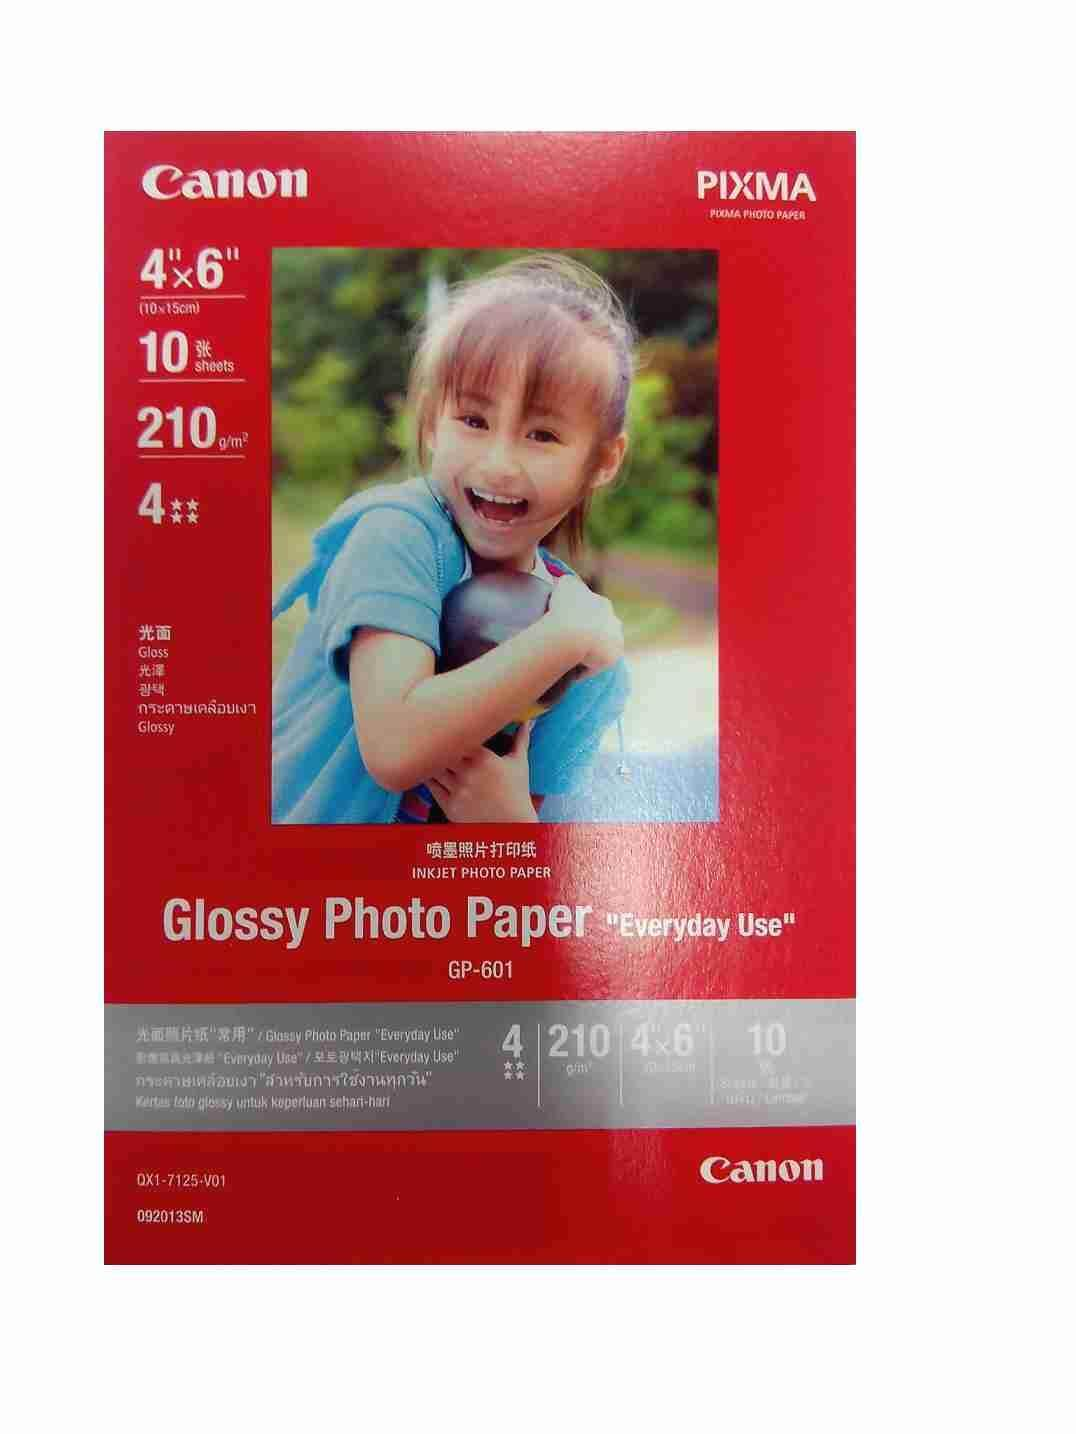 Blank Media For The Best Prices In Malaysia Dvd R Maxell 16x Bulk Pack 50 5 Canon Gp 601 Glossy Photo Paper 4 X 6